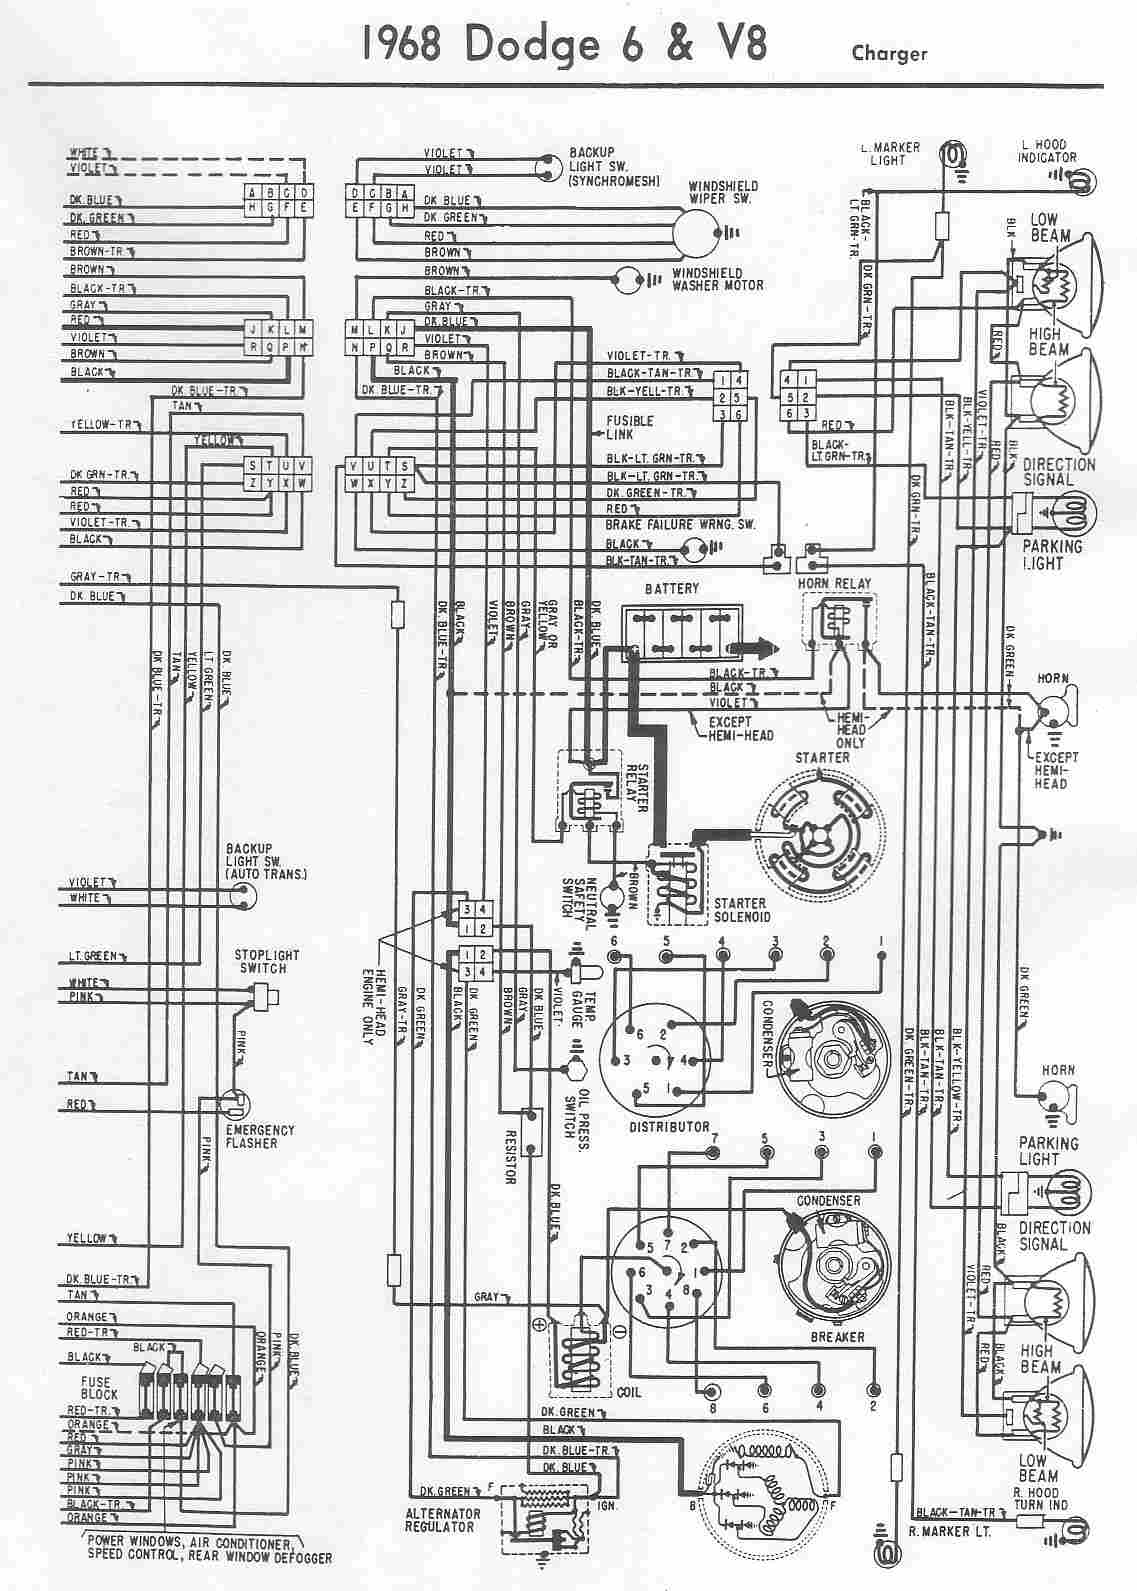 small resolution of 2013 dodge challenger underhood wiring diagram wiring diagram for you lesco wiring diagram 1970 dodge challenger